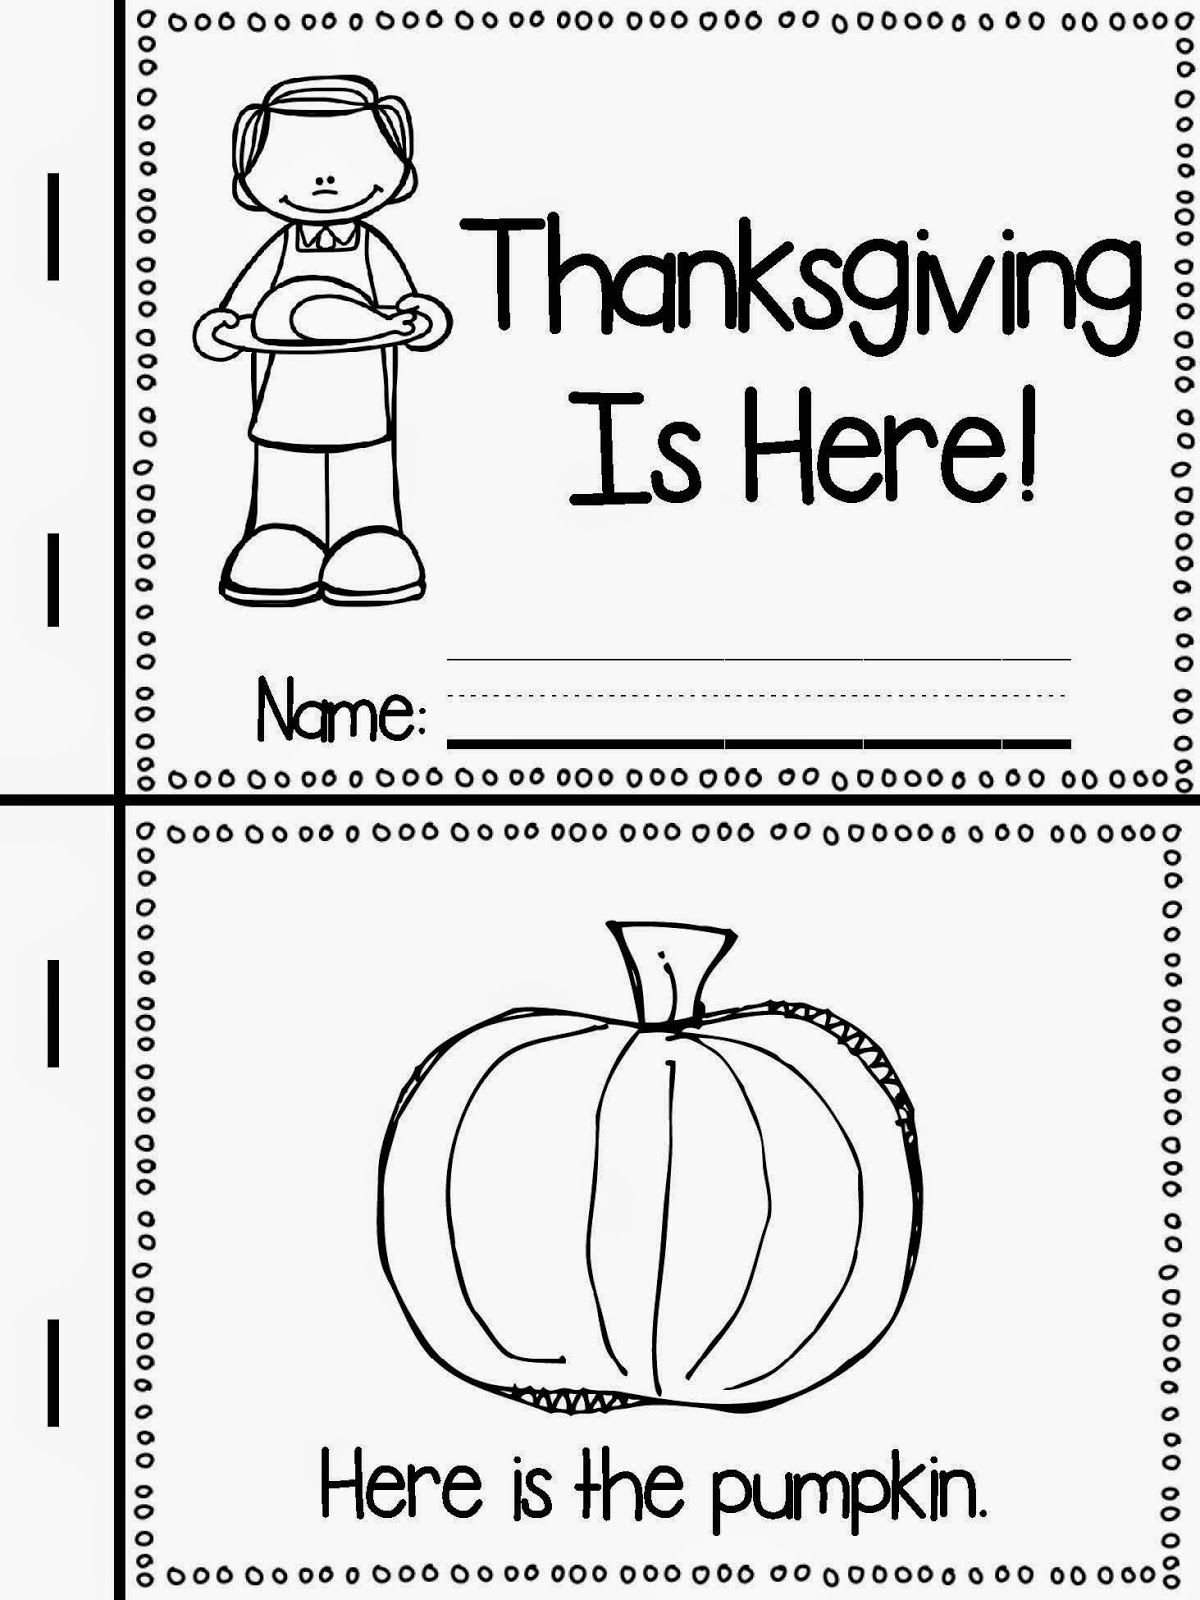 Twas The Week Before Thanksgiving With Images